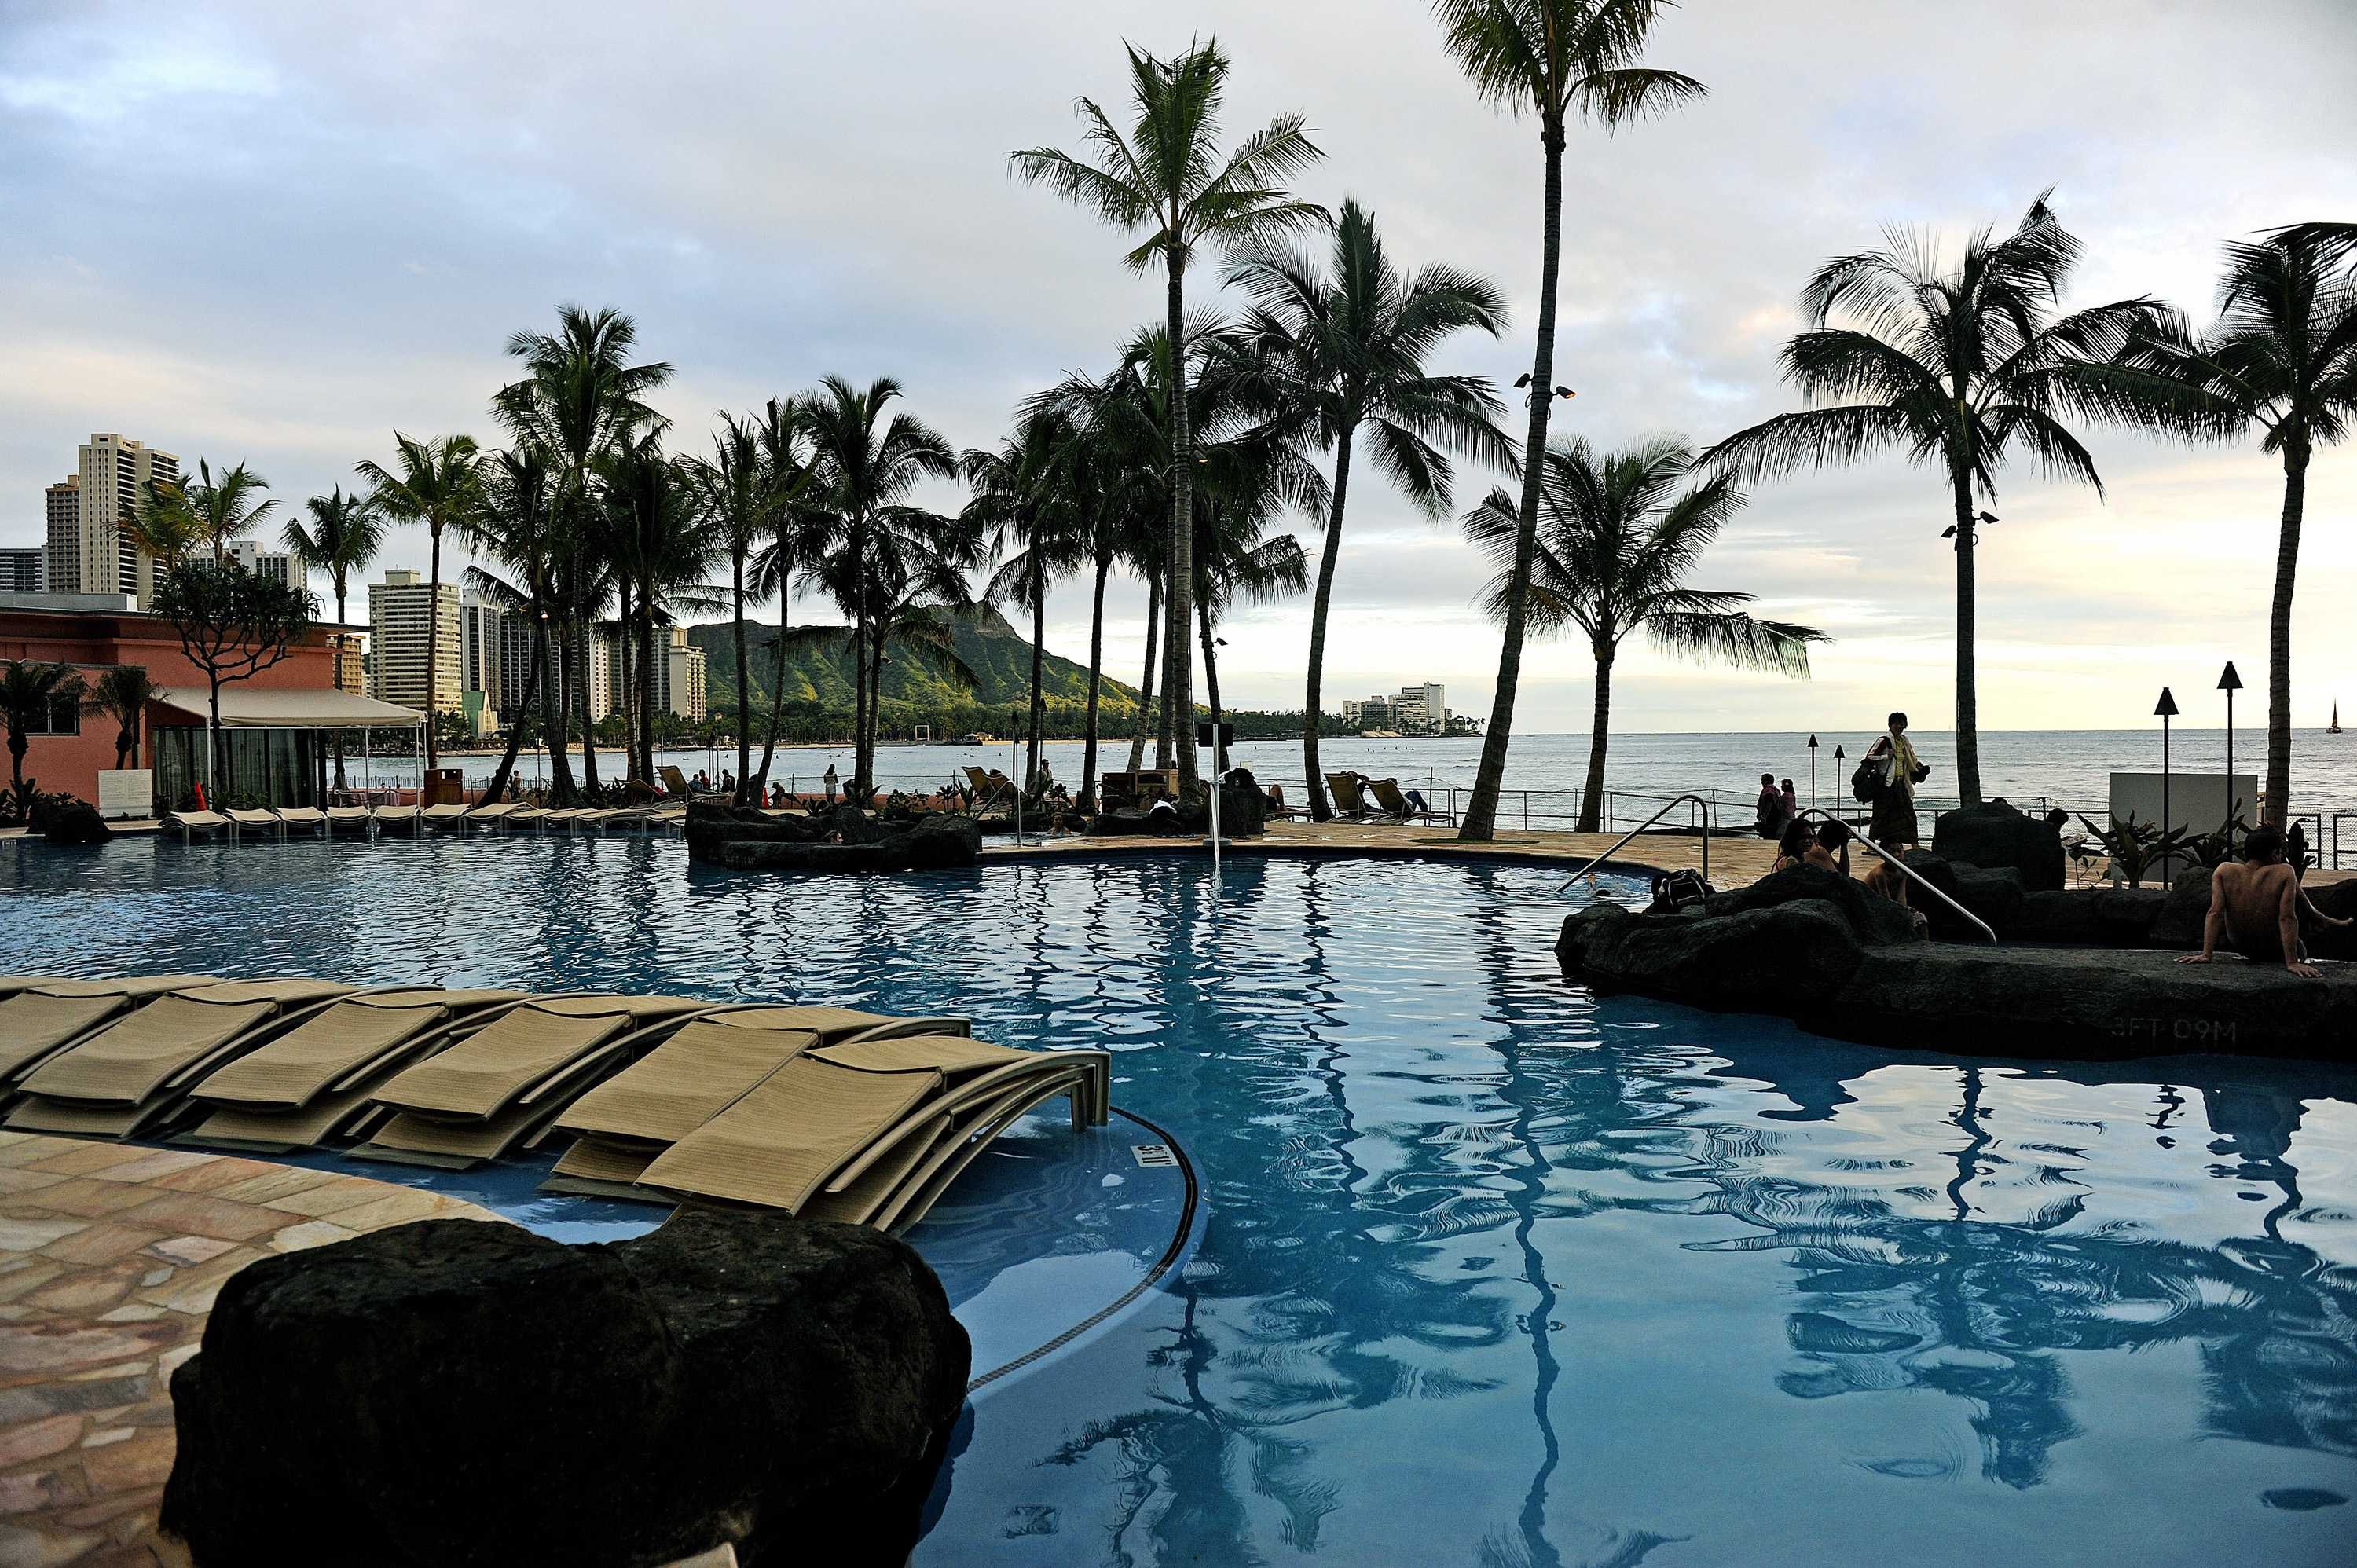 Stunning views can be seen from the resort-style pool, which was part of the Royal Hawaiian makeover. It is nestled between the Royal Hawaiian hotel and its sister property, the Sheraton Waikiki in Oahu, Hawaii. (Cindy Yamanaka/Orange County Register/MCT)